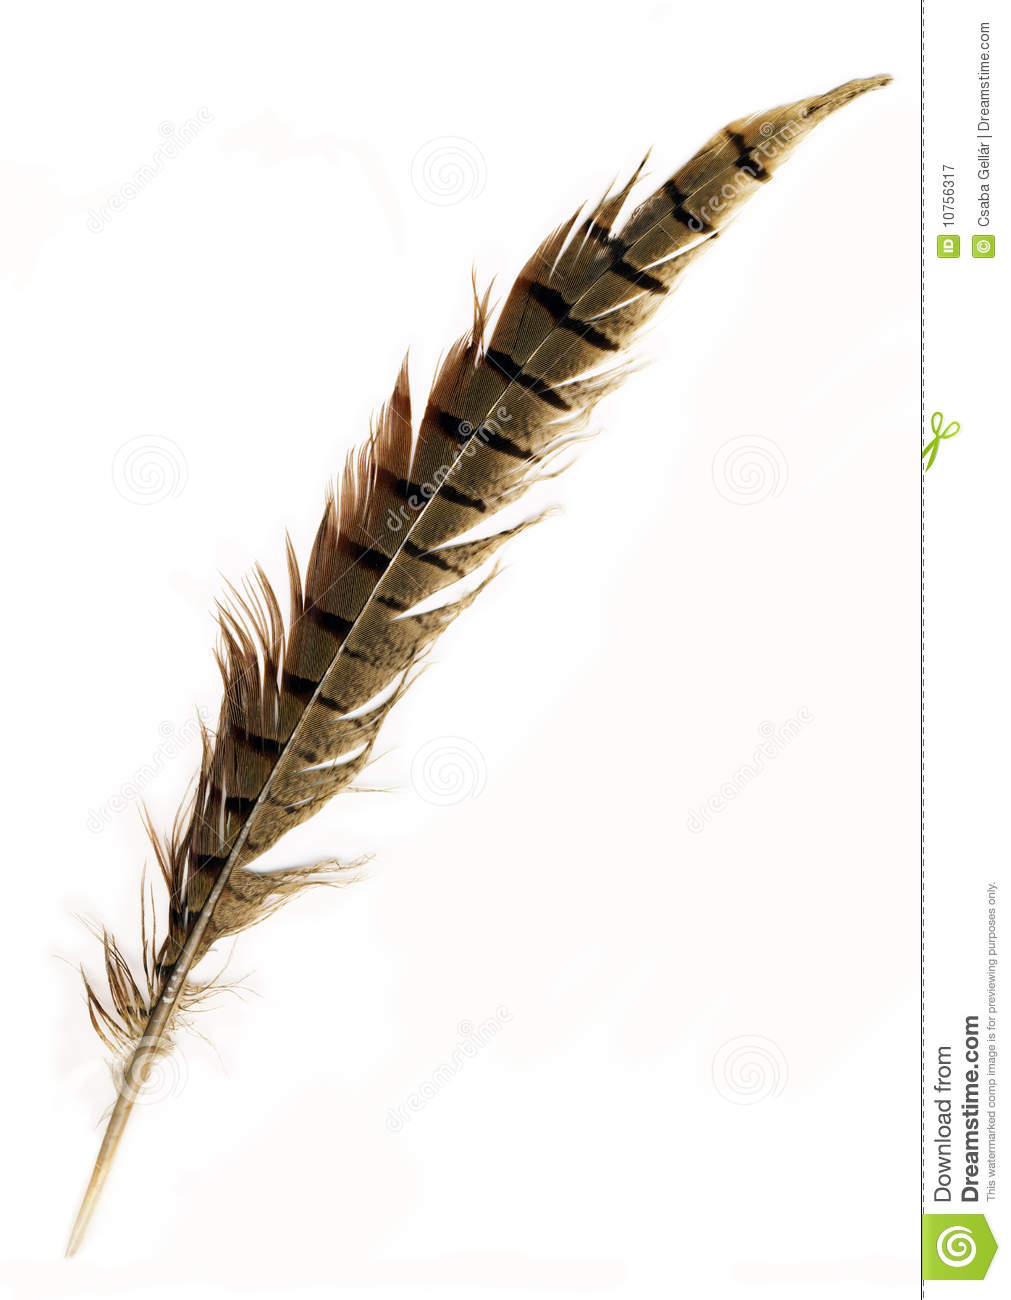 Pheasant Feather Royalty Free Stock Photography - Image: 10756317